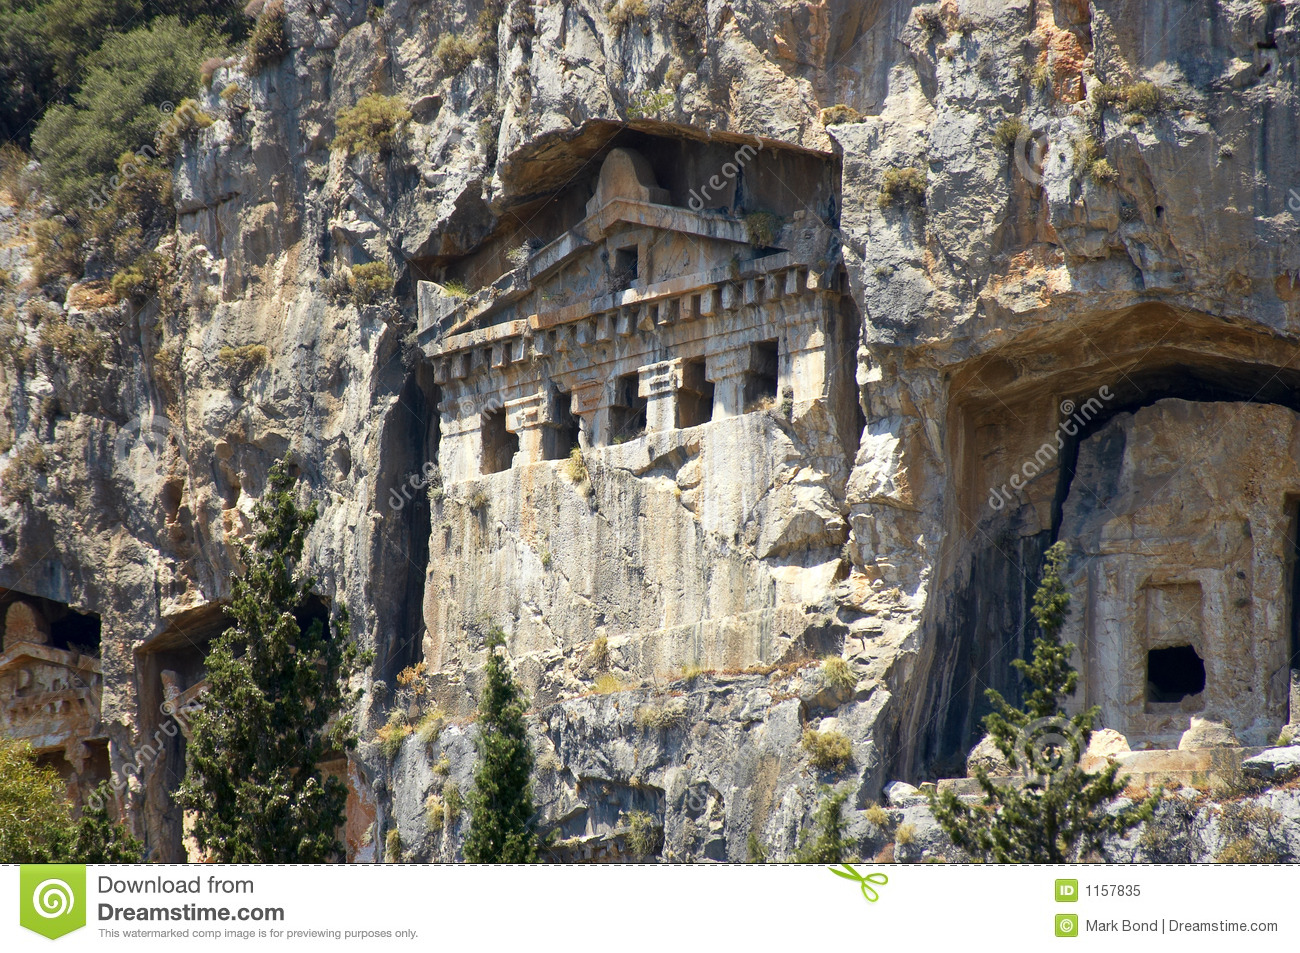 Lycian Rock Tombs Royalty Free Stock Photo - Image: 1157835